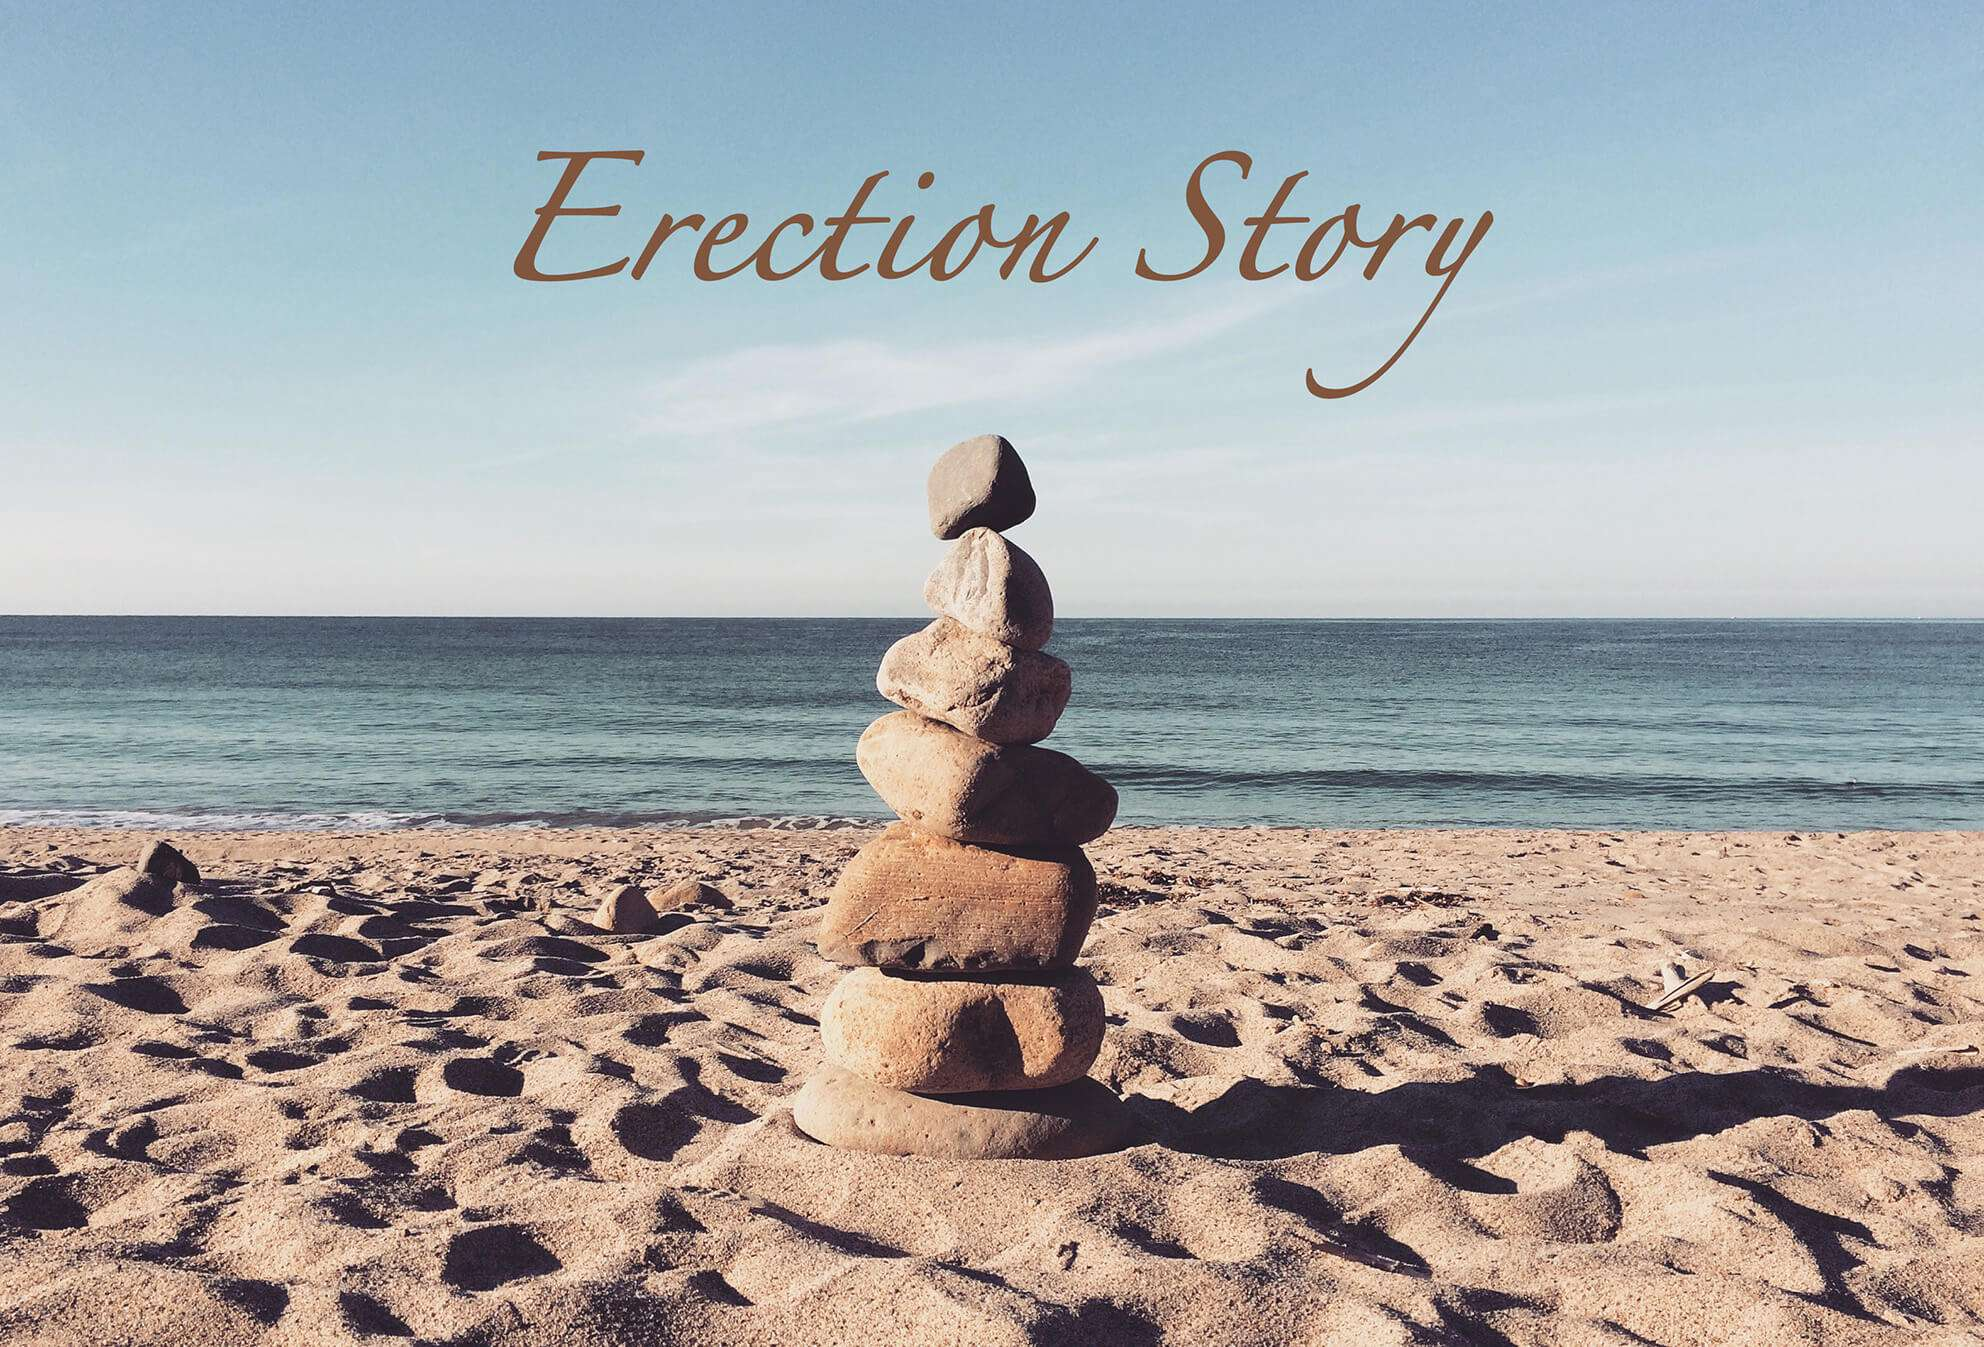 The erection story